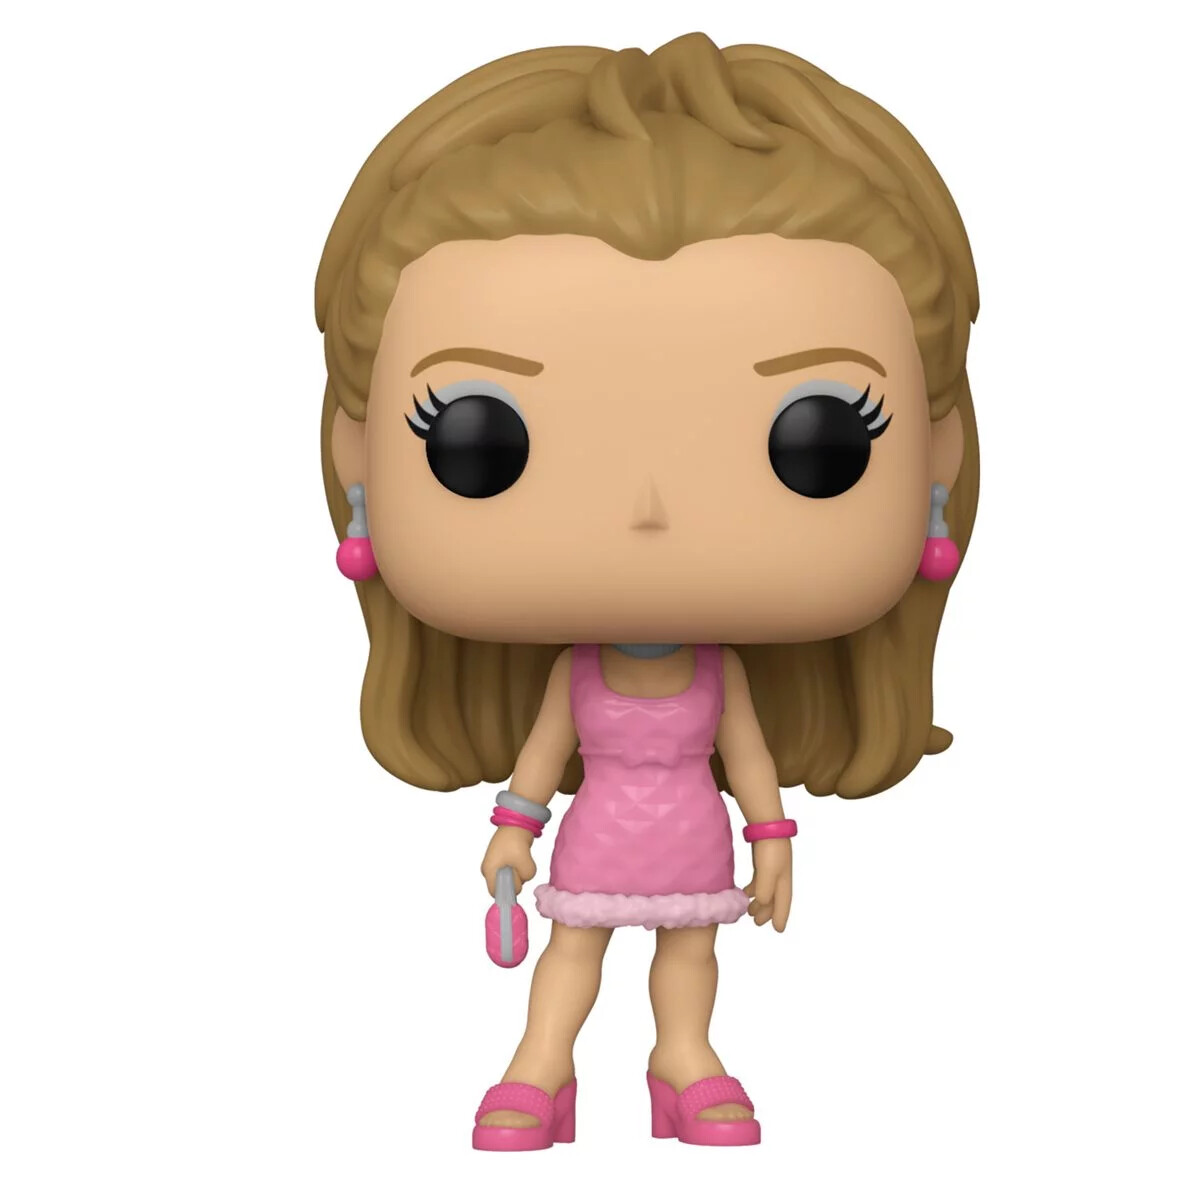 Romy and Michele's High School Reunion Michele Pop! Vinyl Figure